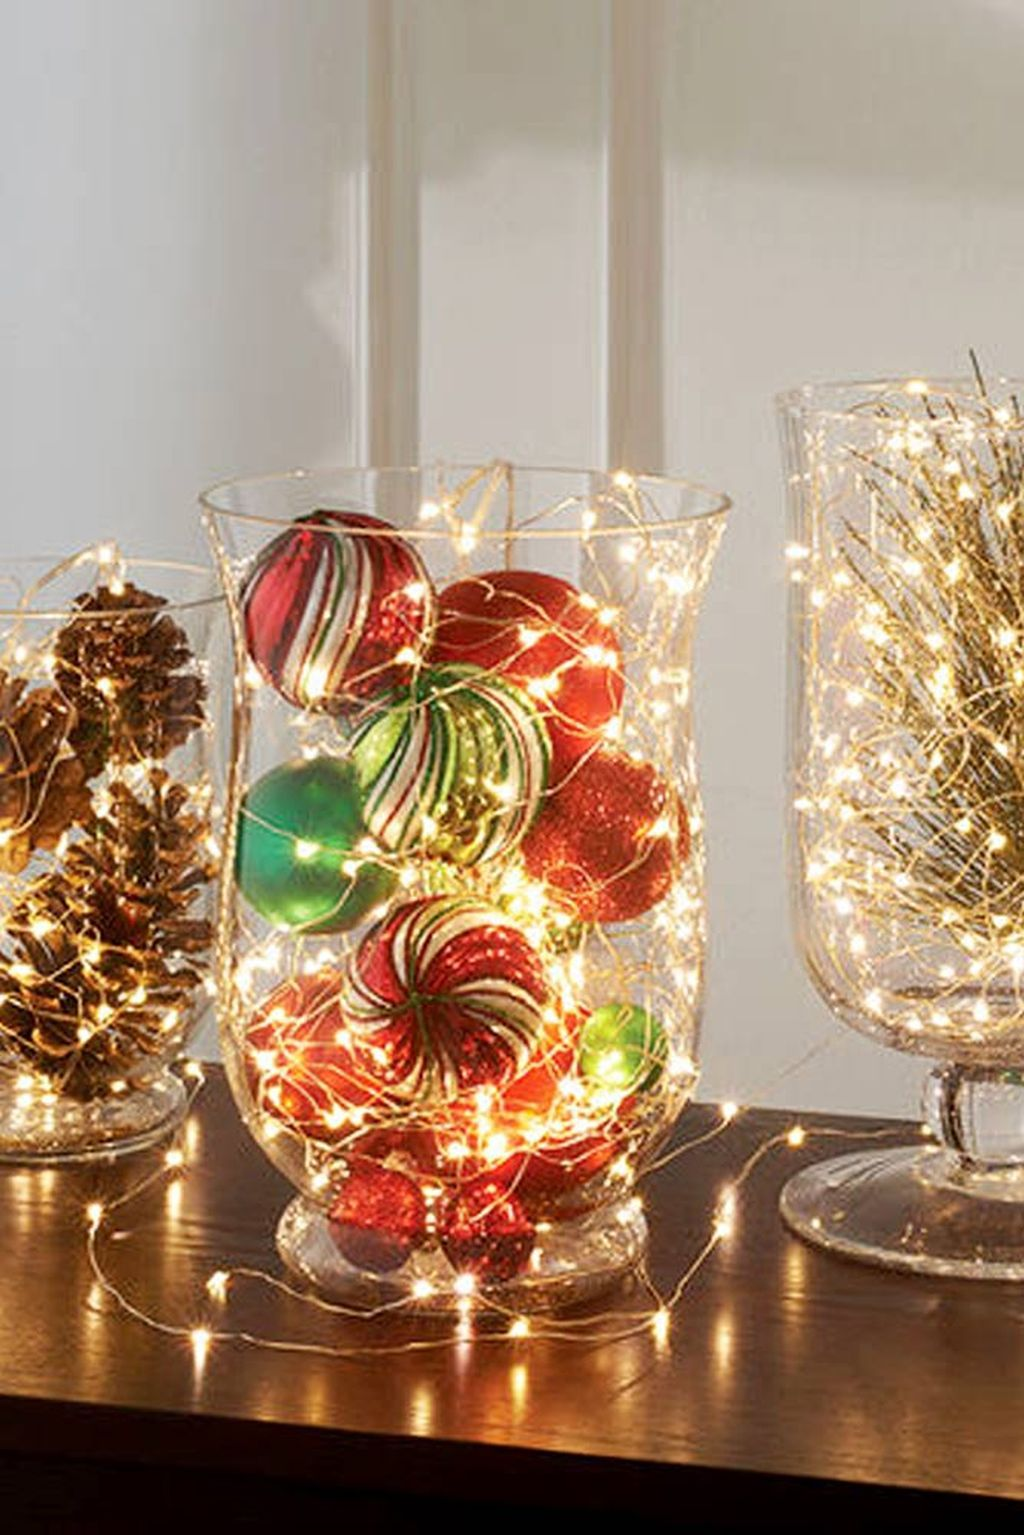 47 Easy And Simple Christmas Table Centerpieces Ideas For Your Dining Room Homedecorish Holiday Centerpieces Christmas Decorations Christmas Centerpieces